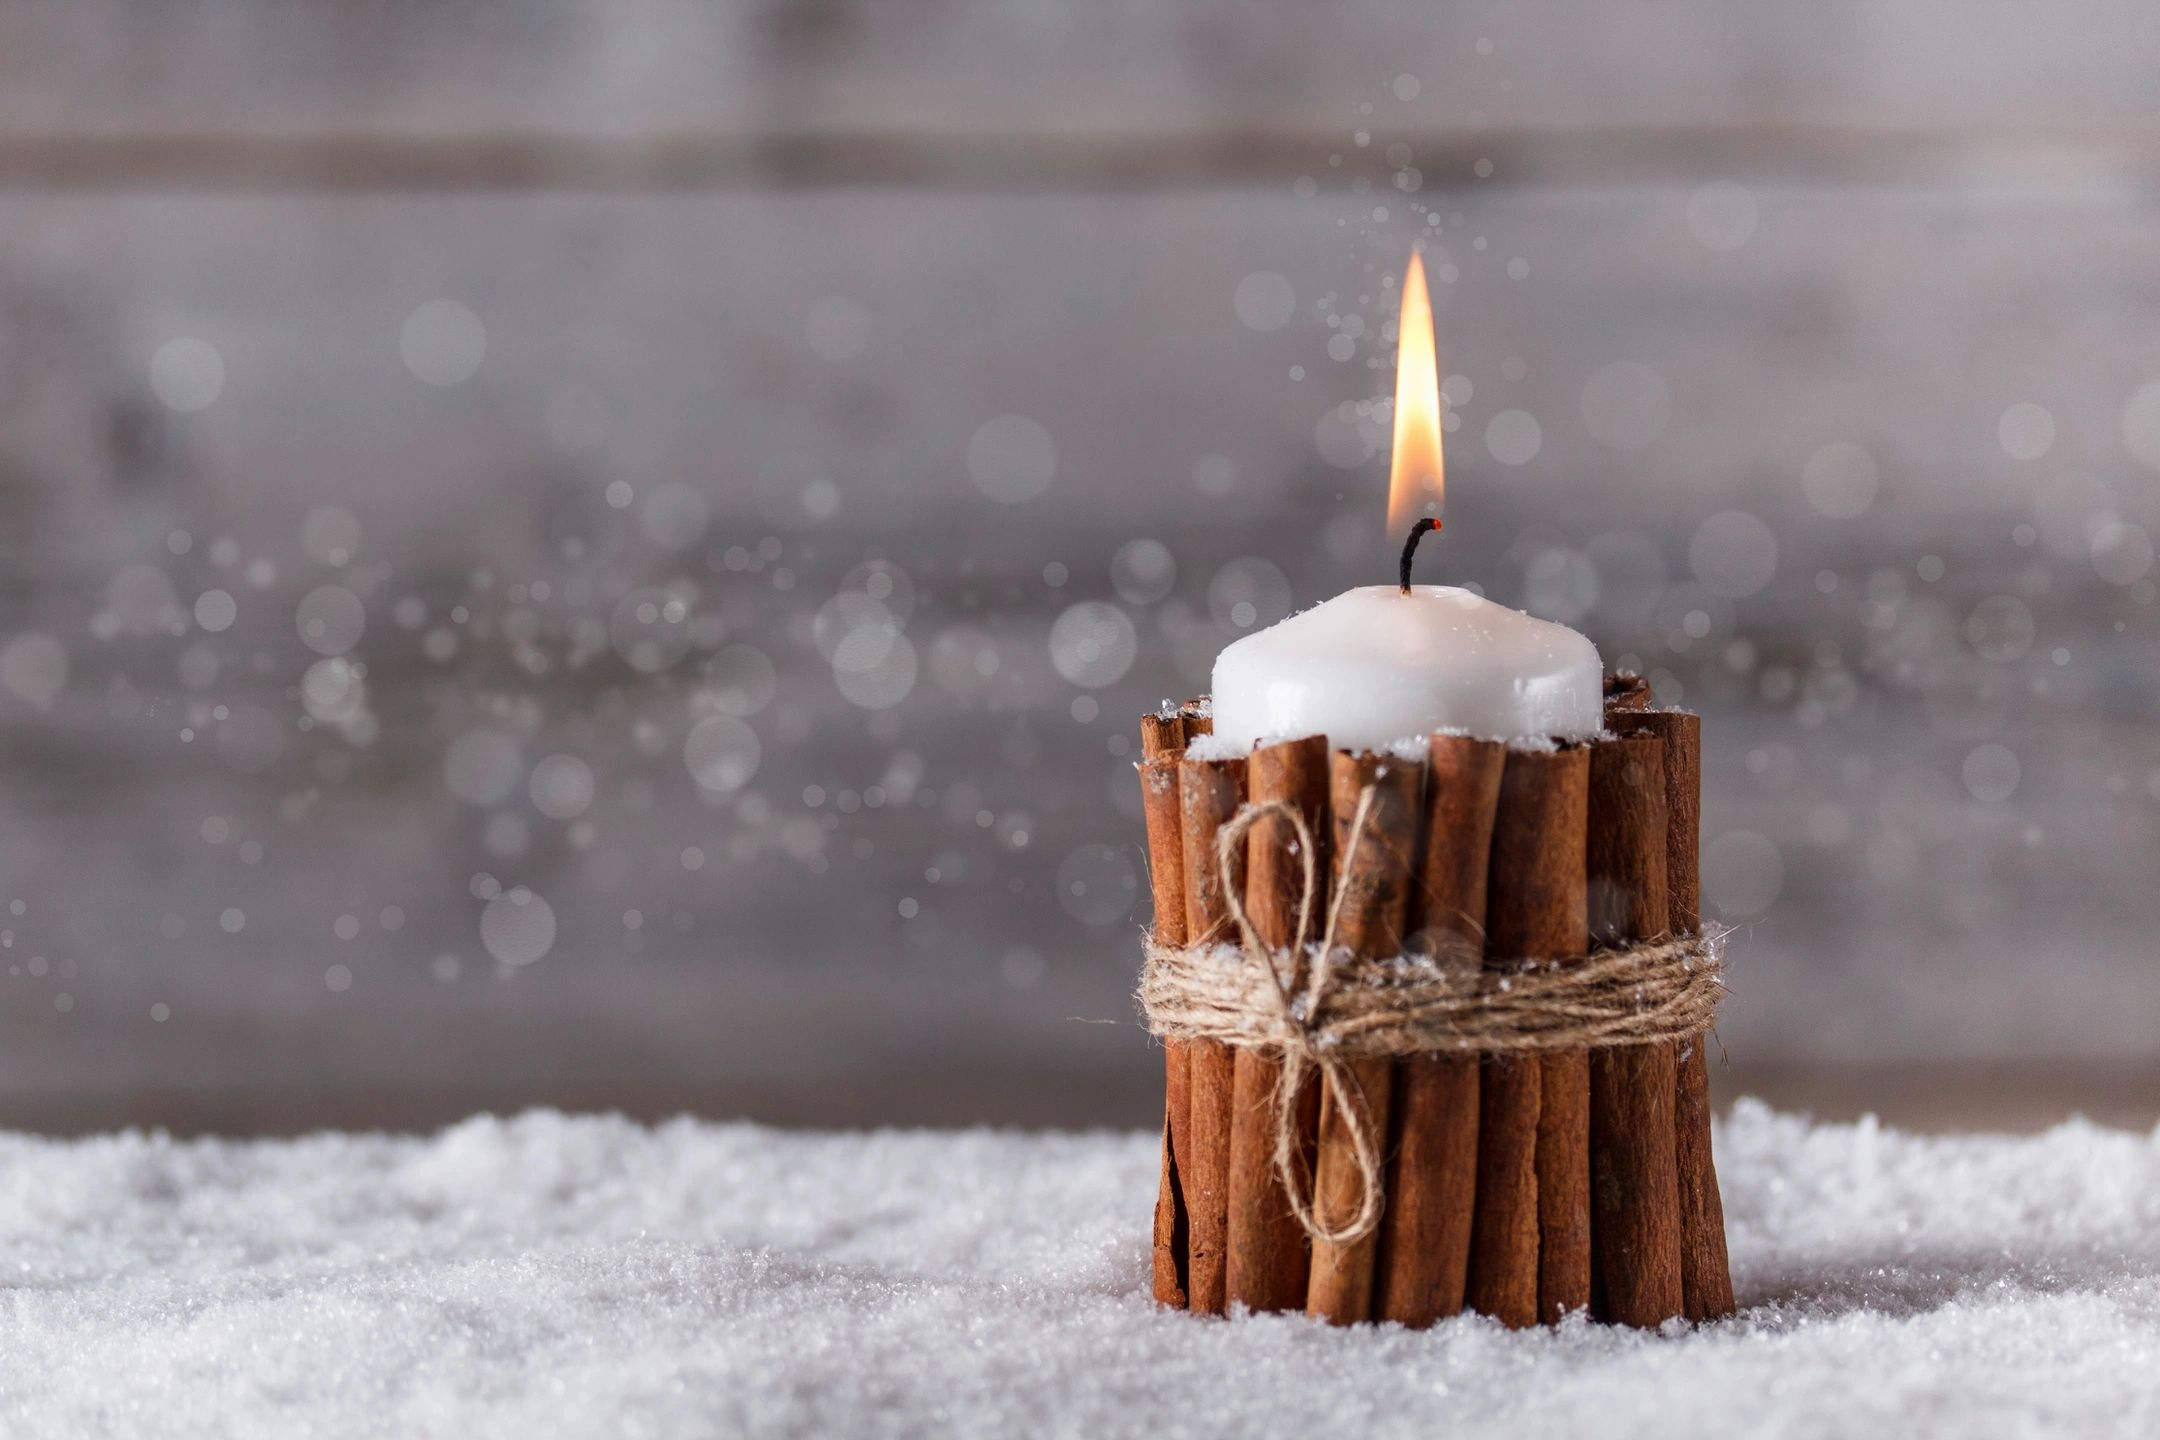 Winter Candle representing the loneliness some feel during the holidays